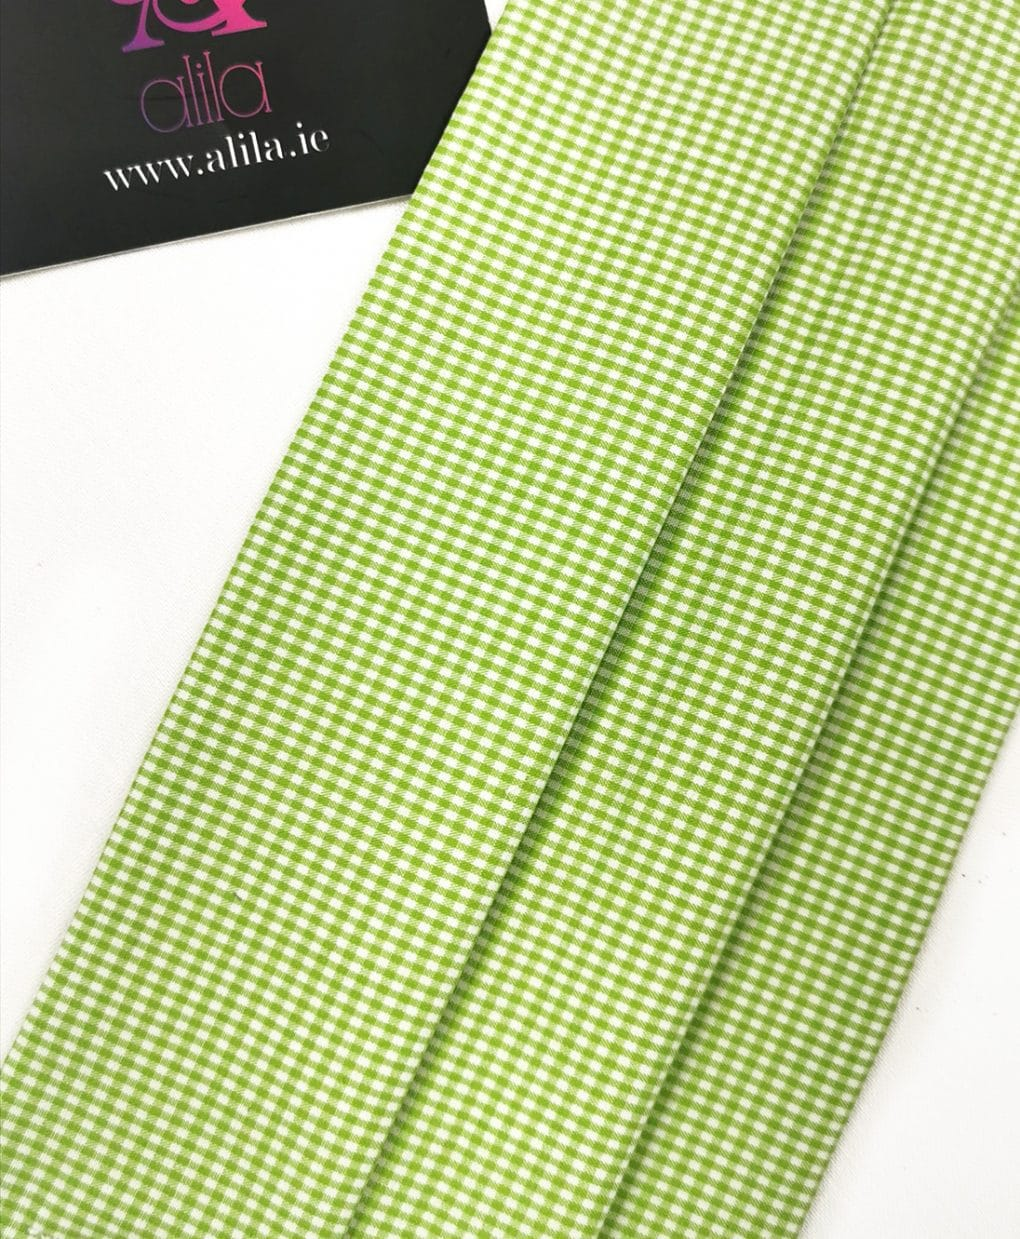 Mens-Striped-Green-Face-Mask-Alila